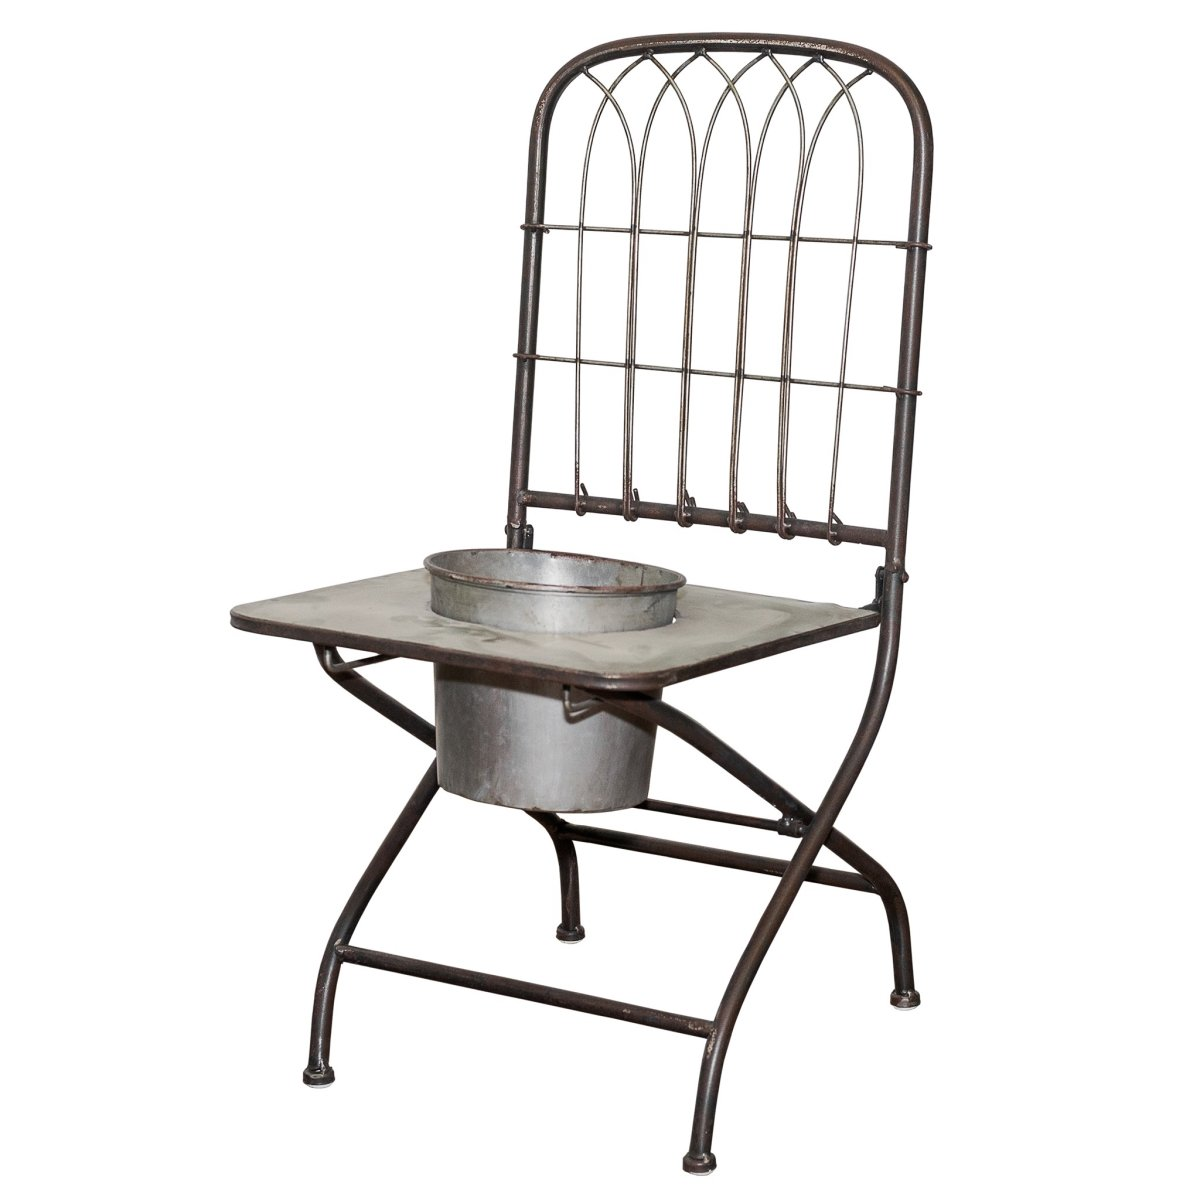 VIP Home Garden FH1730 Metal Chair Planter Gray by VIP Home Garden